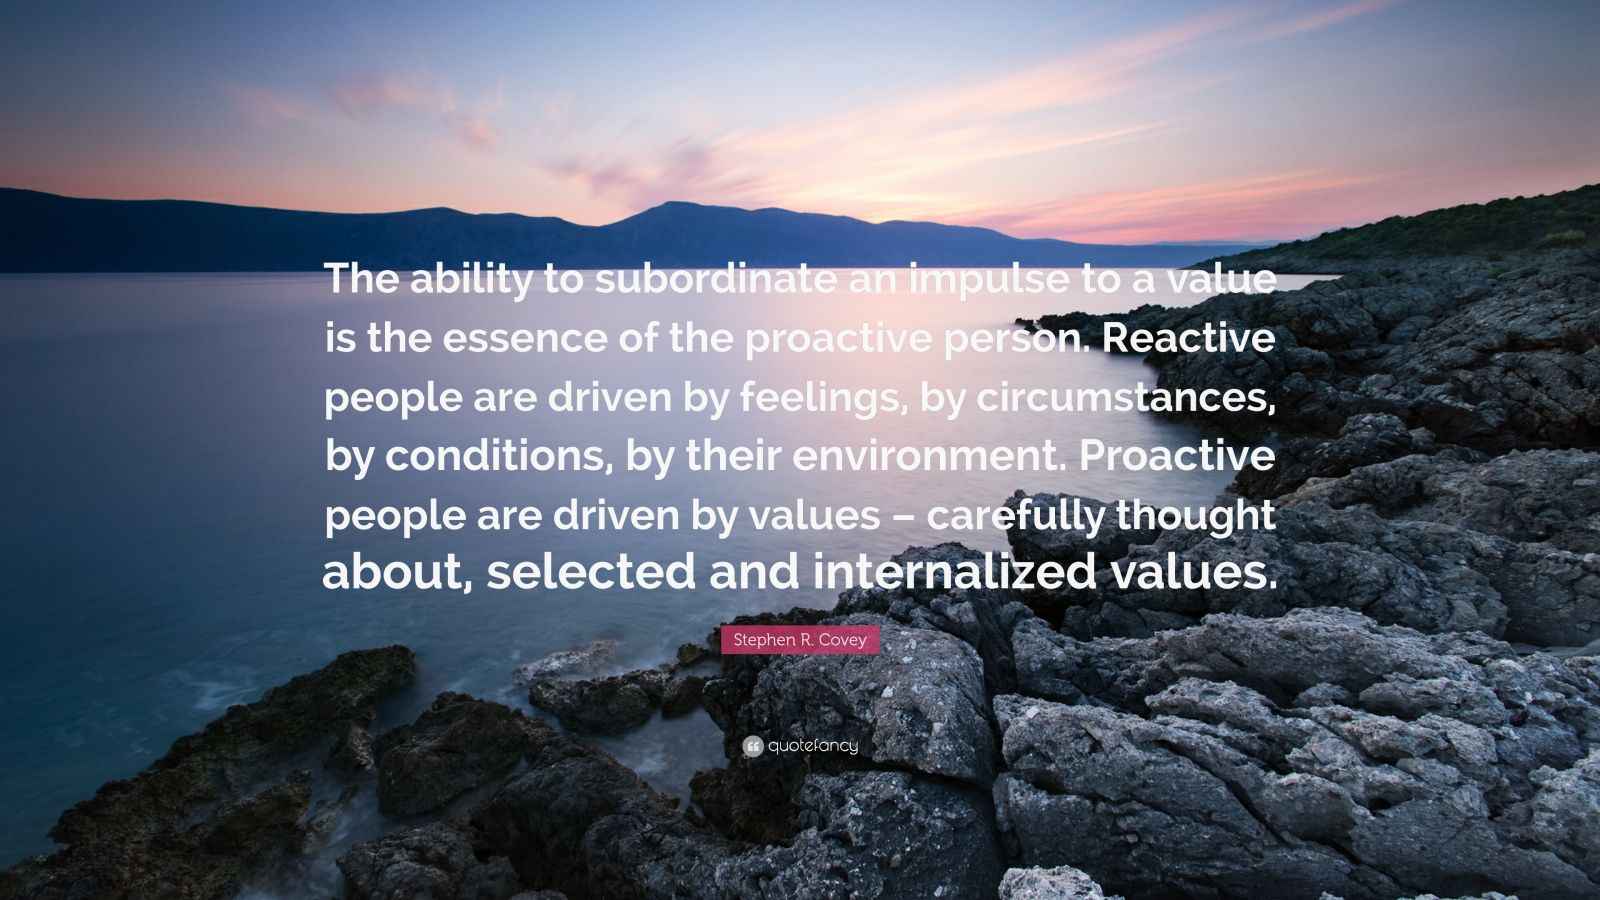 "Stephen R. Covey Quote: ""The ability to subordinate an impulse to a value is the essence of the proactive person. Reactive people are driven by feelings, by circumstances, by conditions, by their environment. Proactive people are driven by values – carefully thought about, selected and internalized values."""